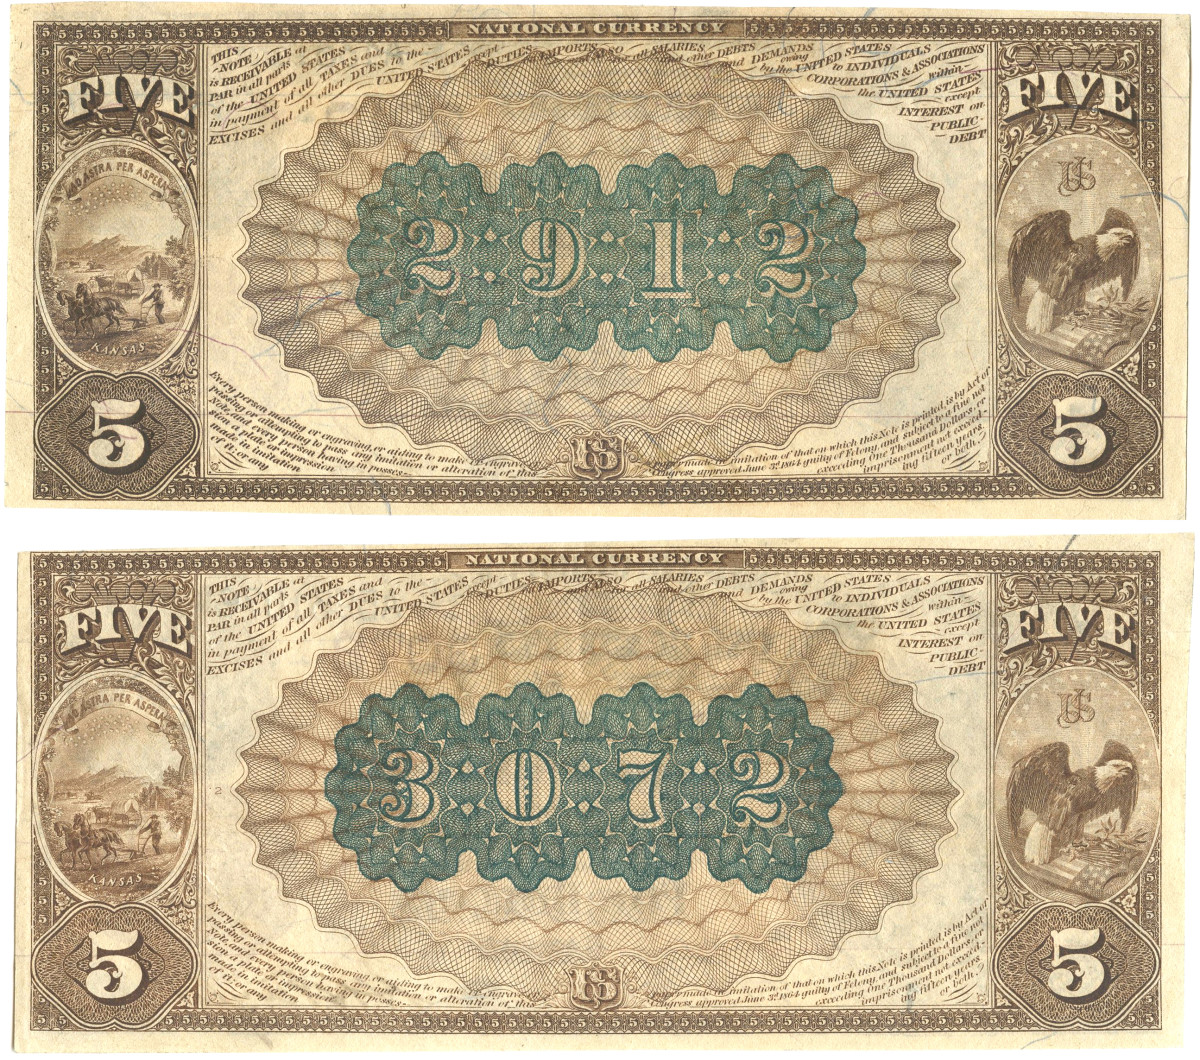 The reverses of the newly discovered notes.